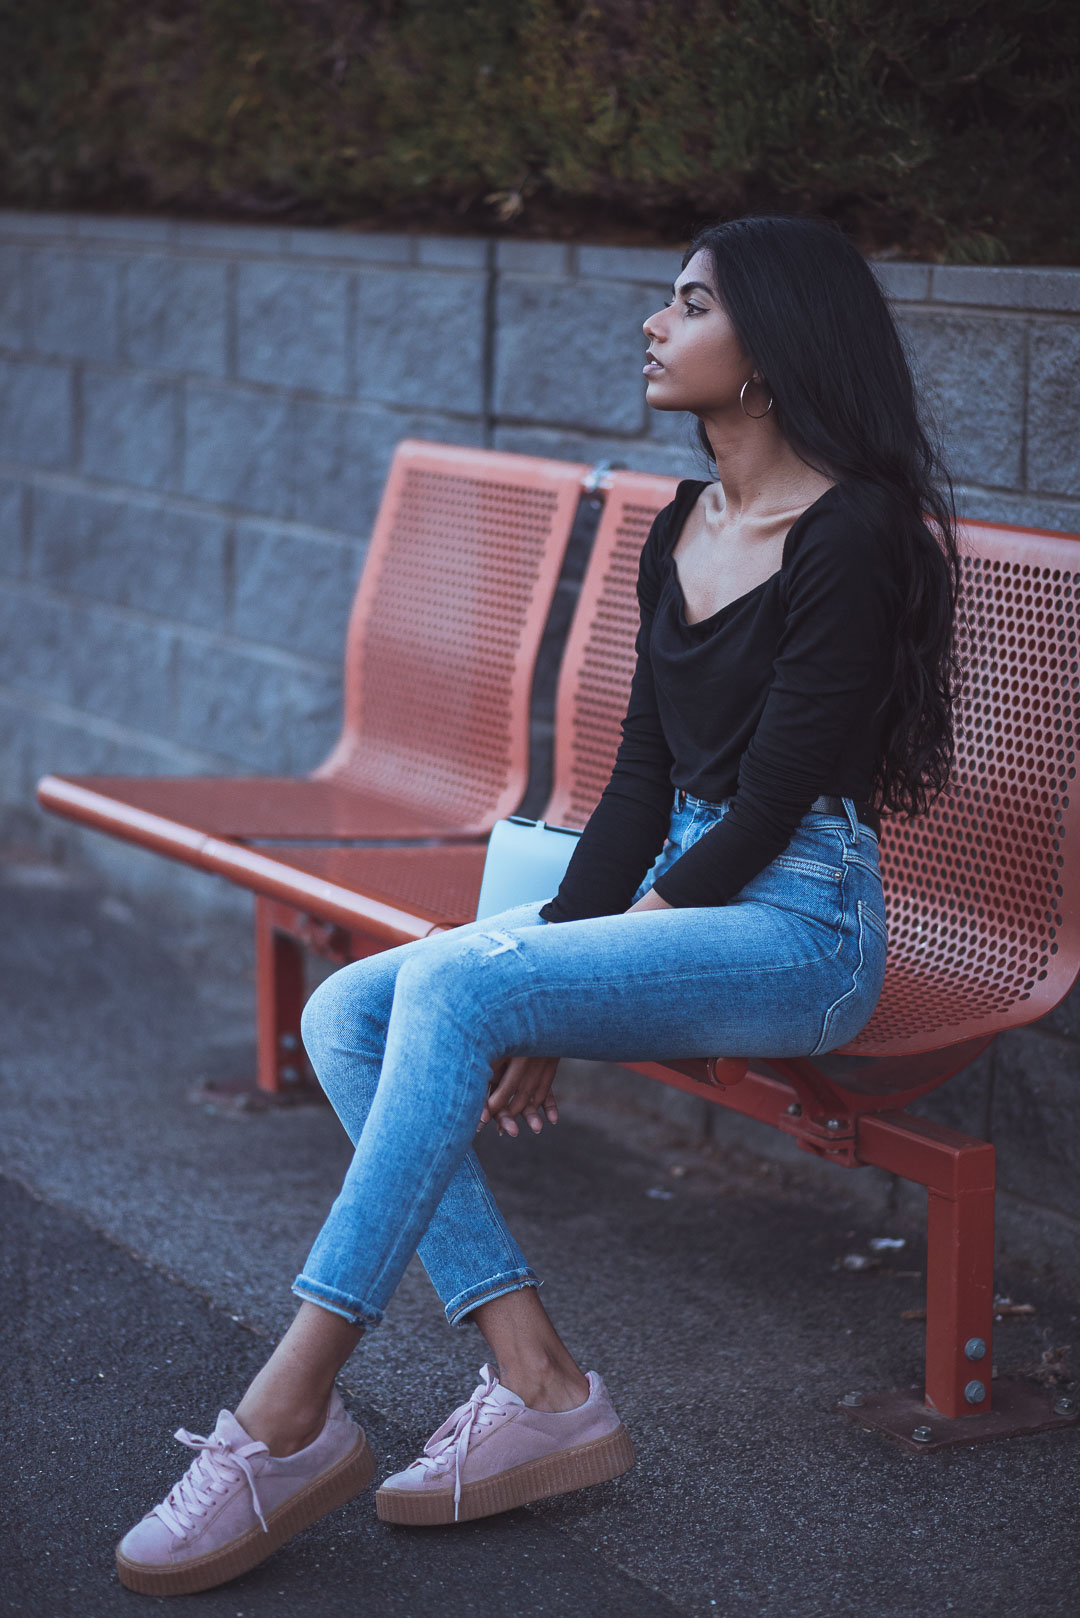 Blue Jeans Sitting